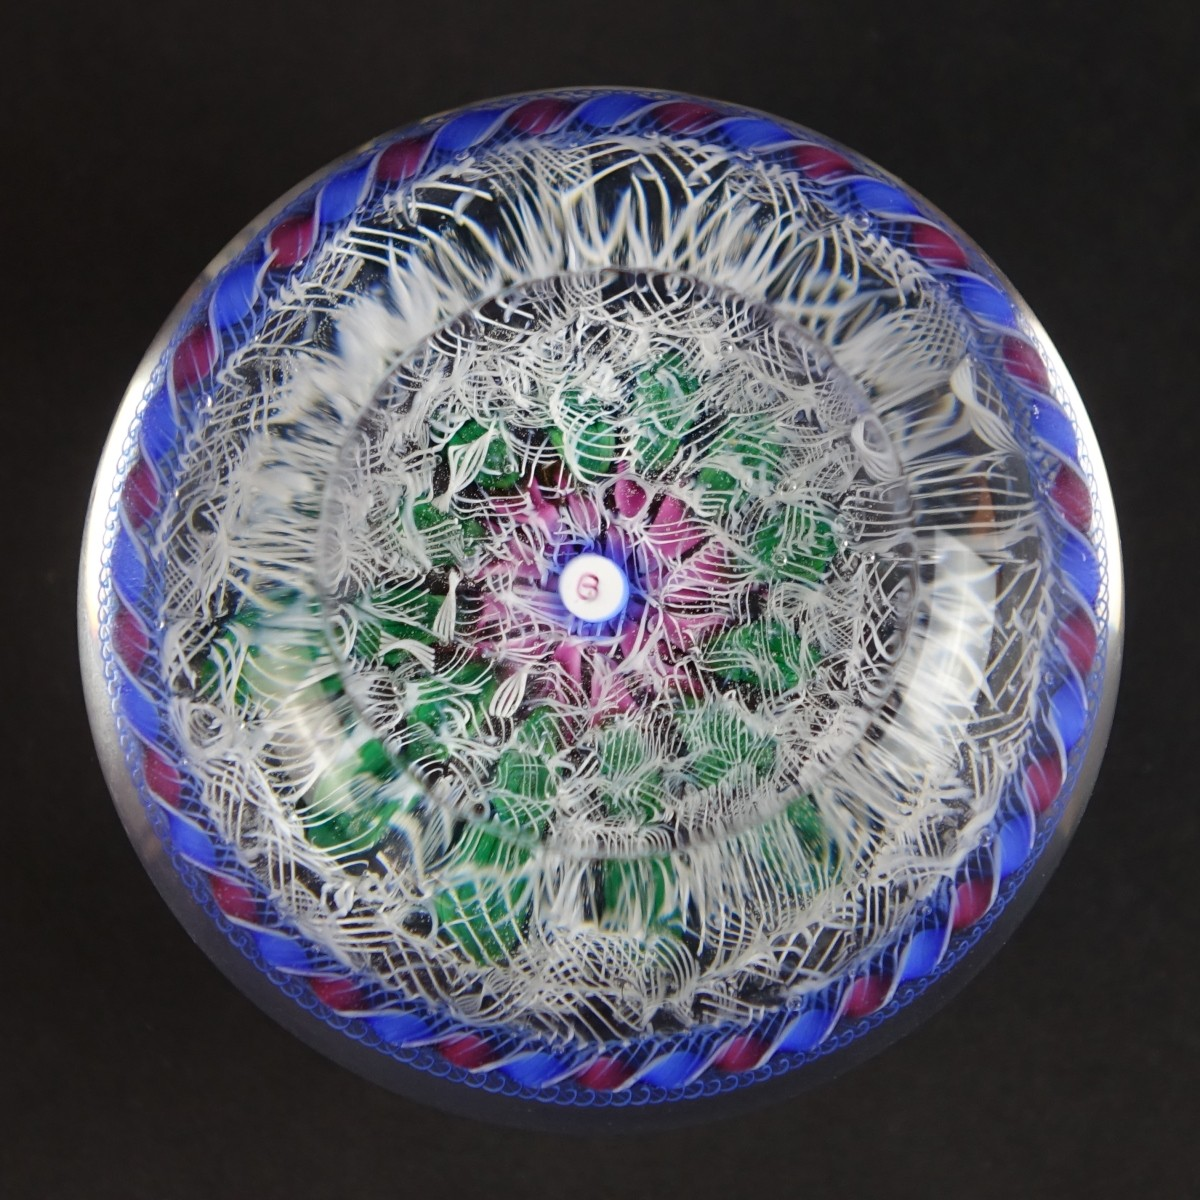 Antique Baccarat Paperweight